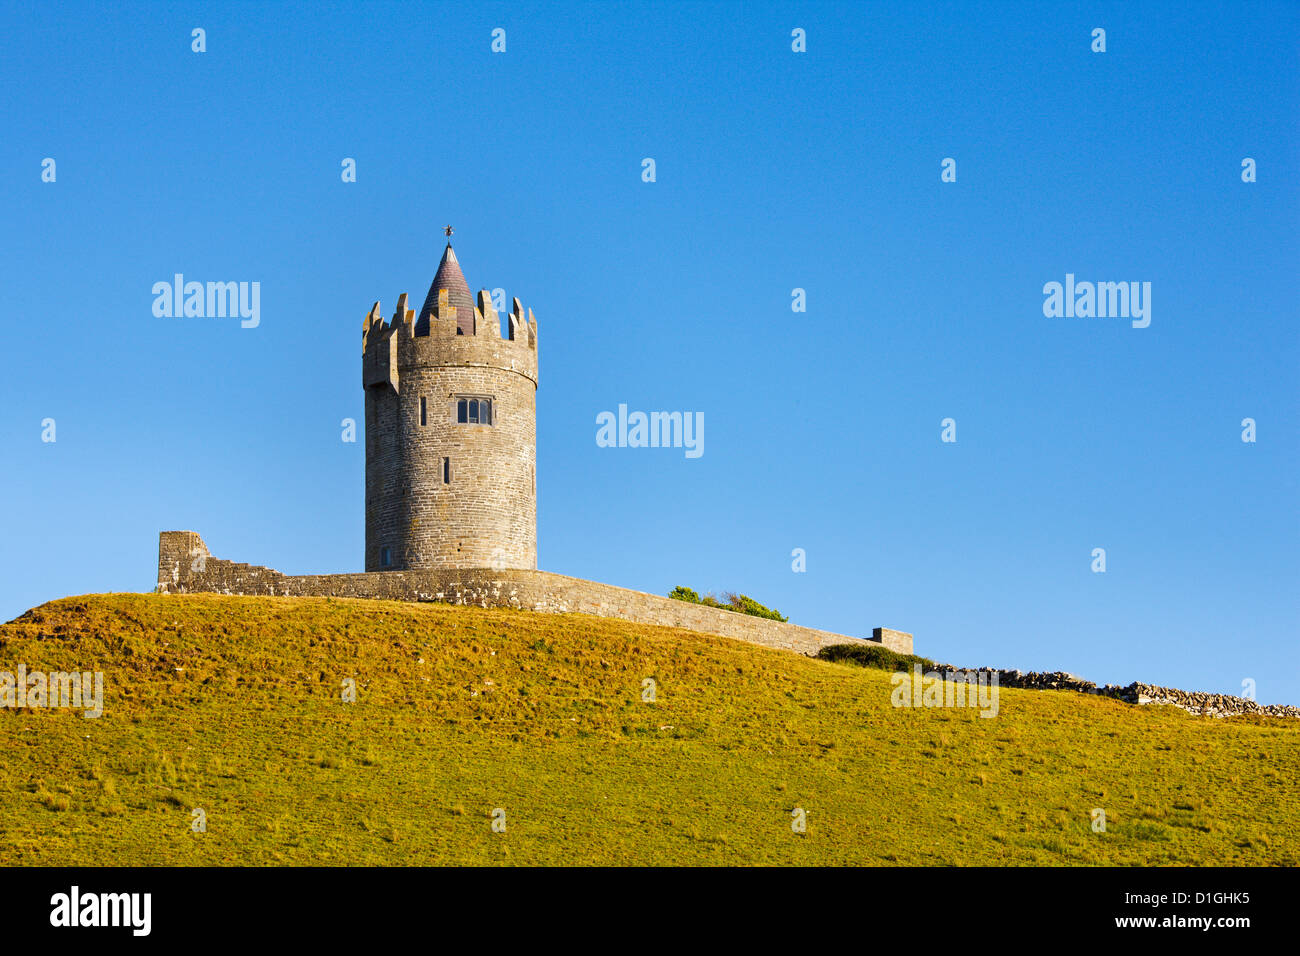 Doonagore Castle on the County Clare coast, County Clare, Munster, Republic of Ireland - Stock Image